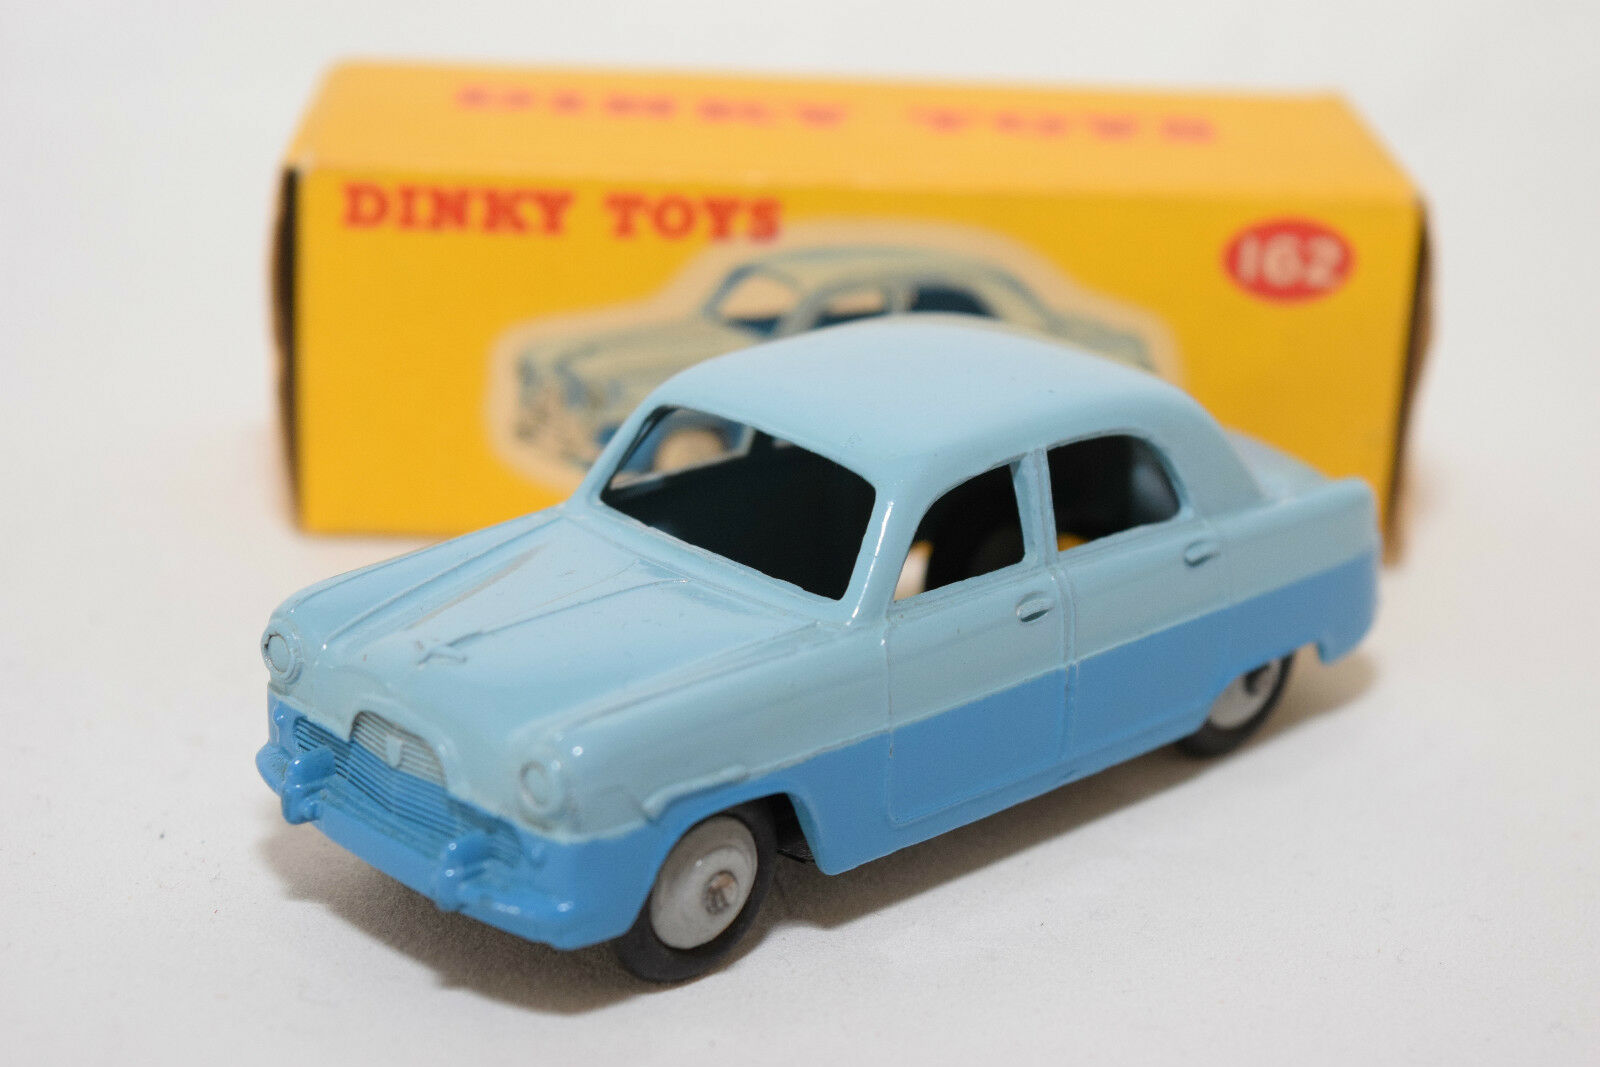 P DINKY TOYS 162 Ford Zephyr Saloon blu Factory error MINT BOXED RARE RARO